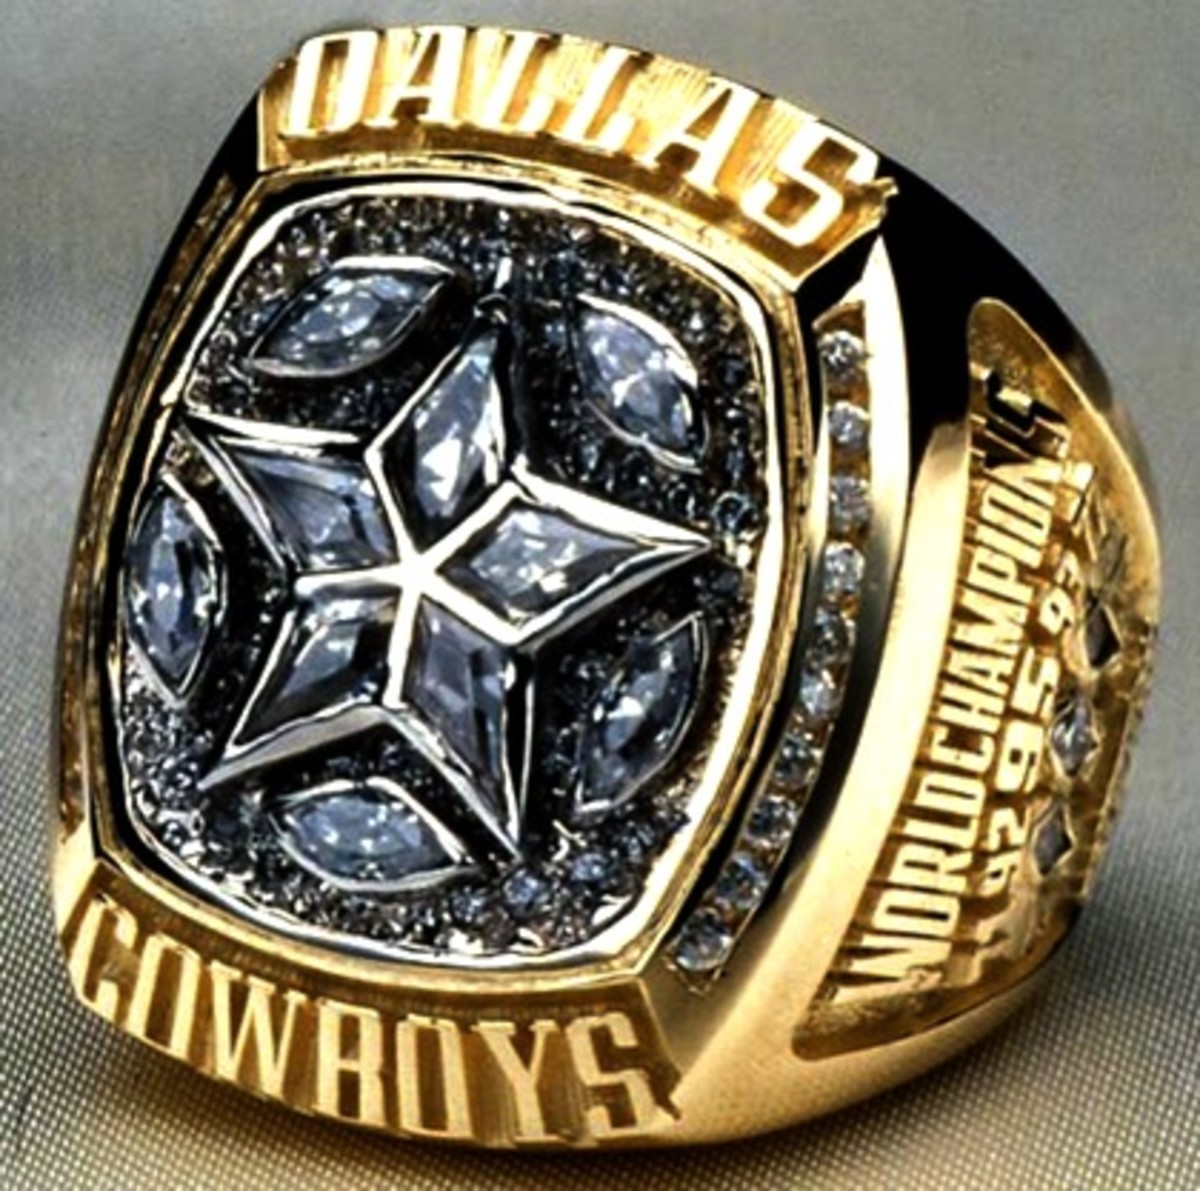 XXX Dallas cowboys 1996 super bowl championship ring